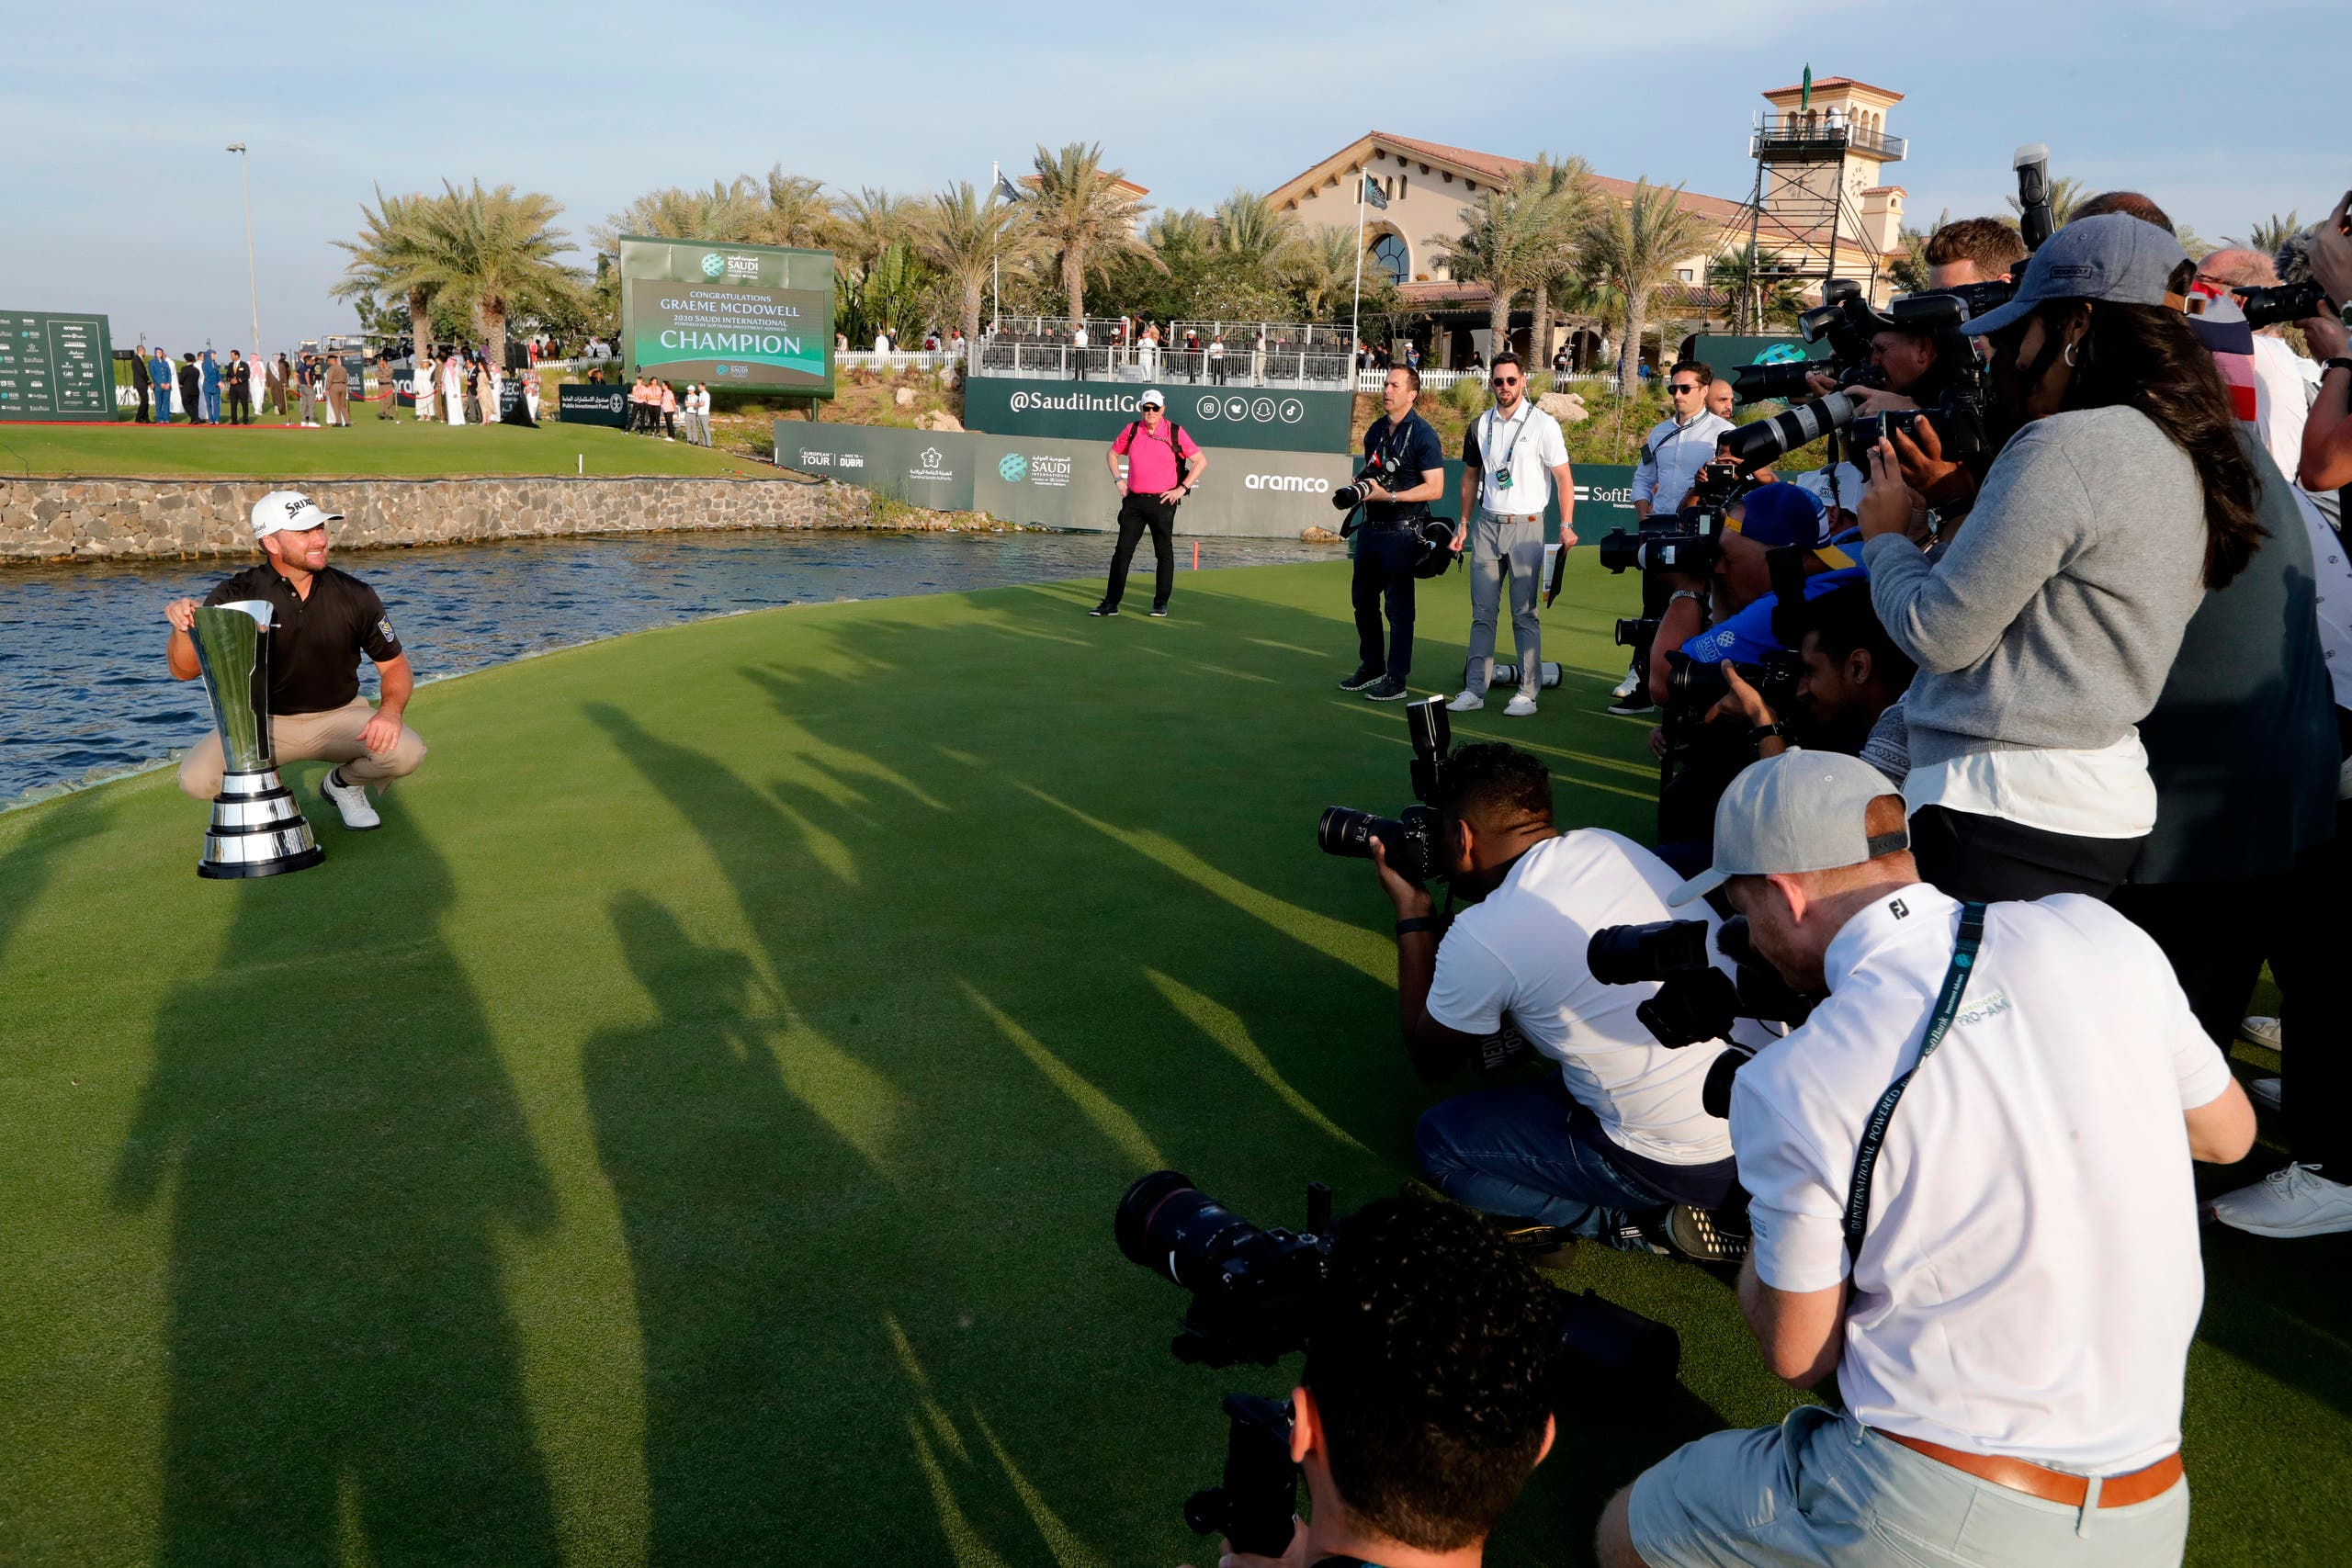 Cameramen film Graeme McDowell from Northern Ireland as he celebrates the trophy after he wins the final round of the Saudi International at Royal Greens Golf and Country Club on Feb. 2, 2020. (AP)